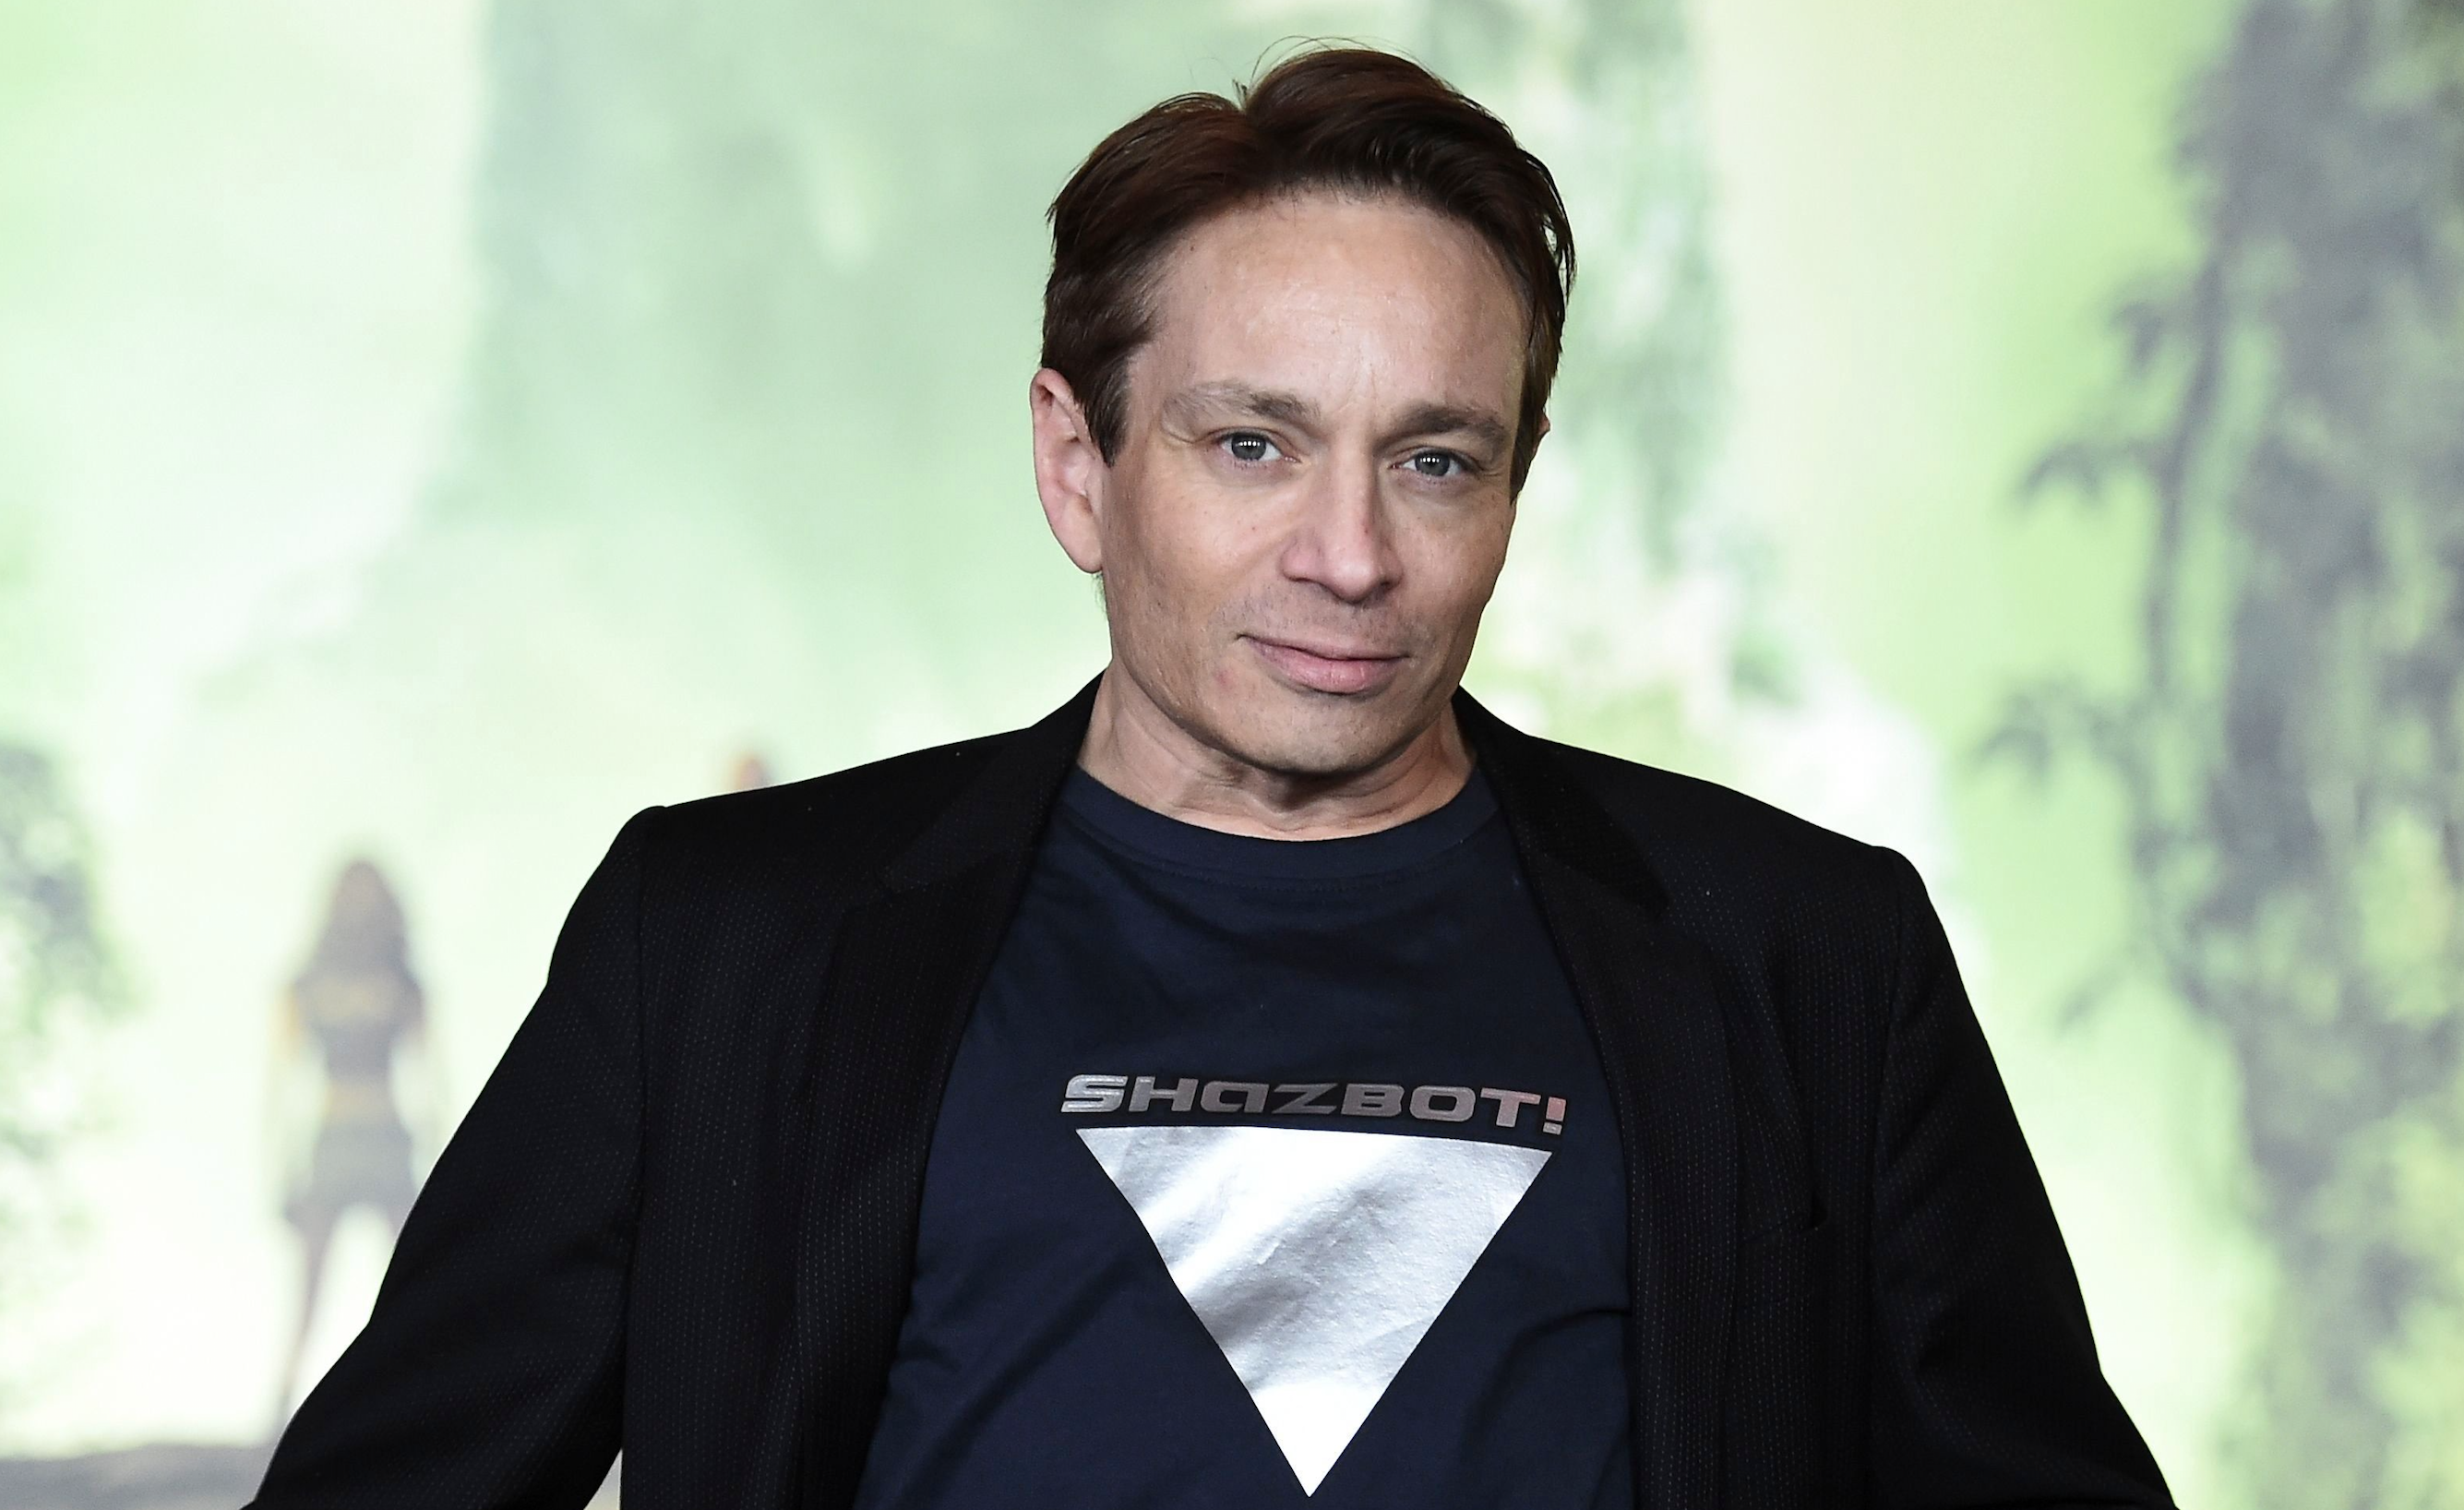 Chris Kattan Alleges Lorne Michaels Pressured Him to Have Sex With Amy Heckerling to Save 'Roxbury' Movie